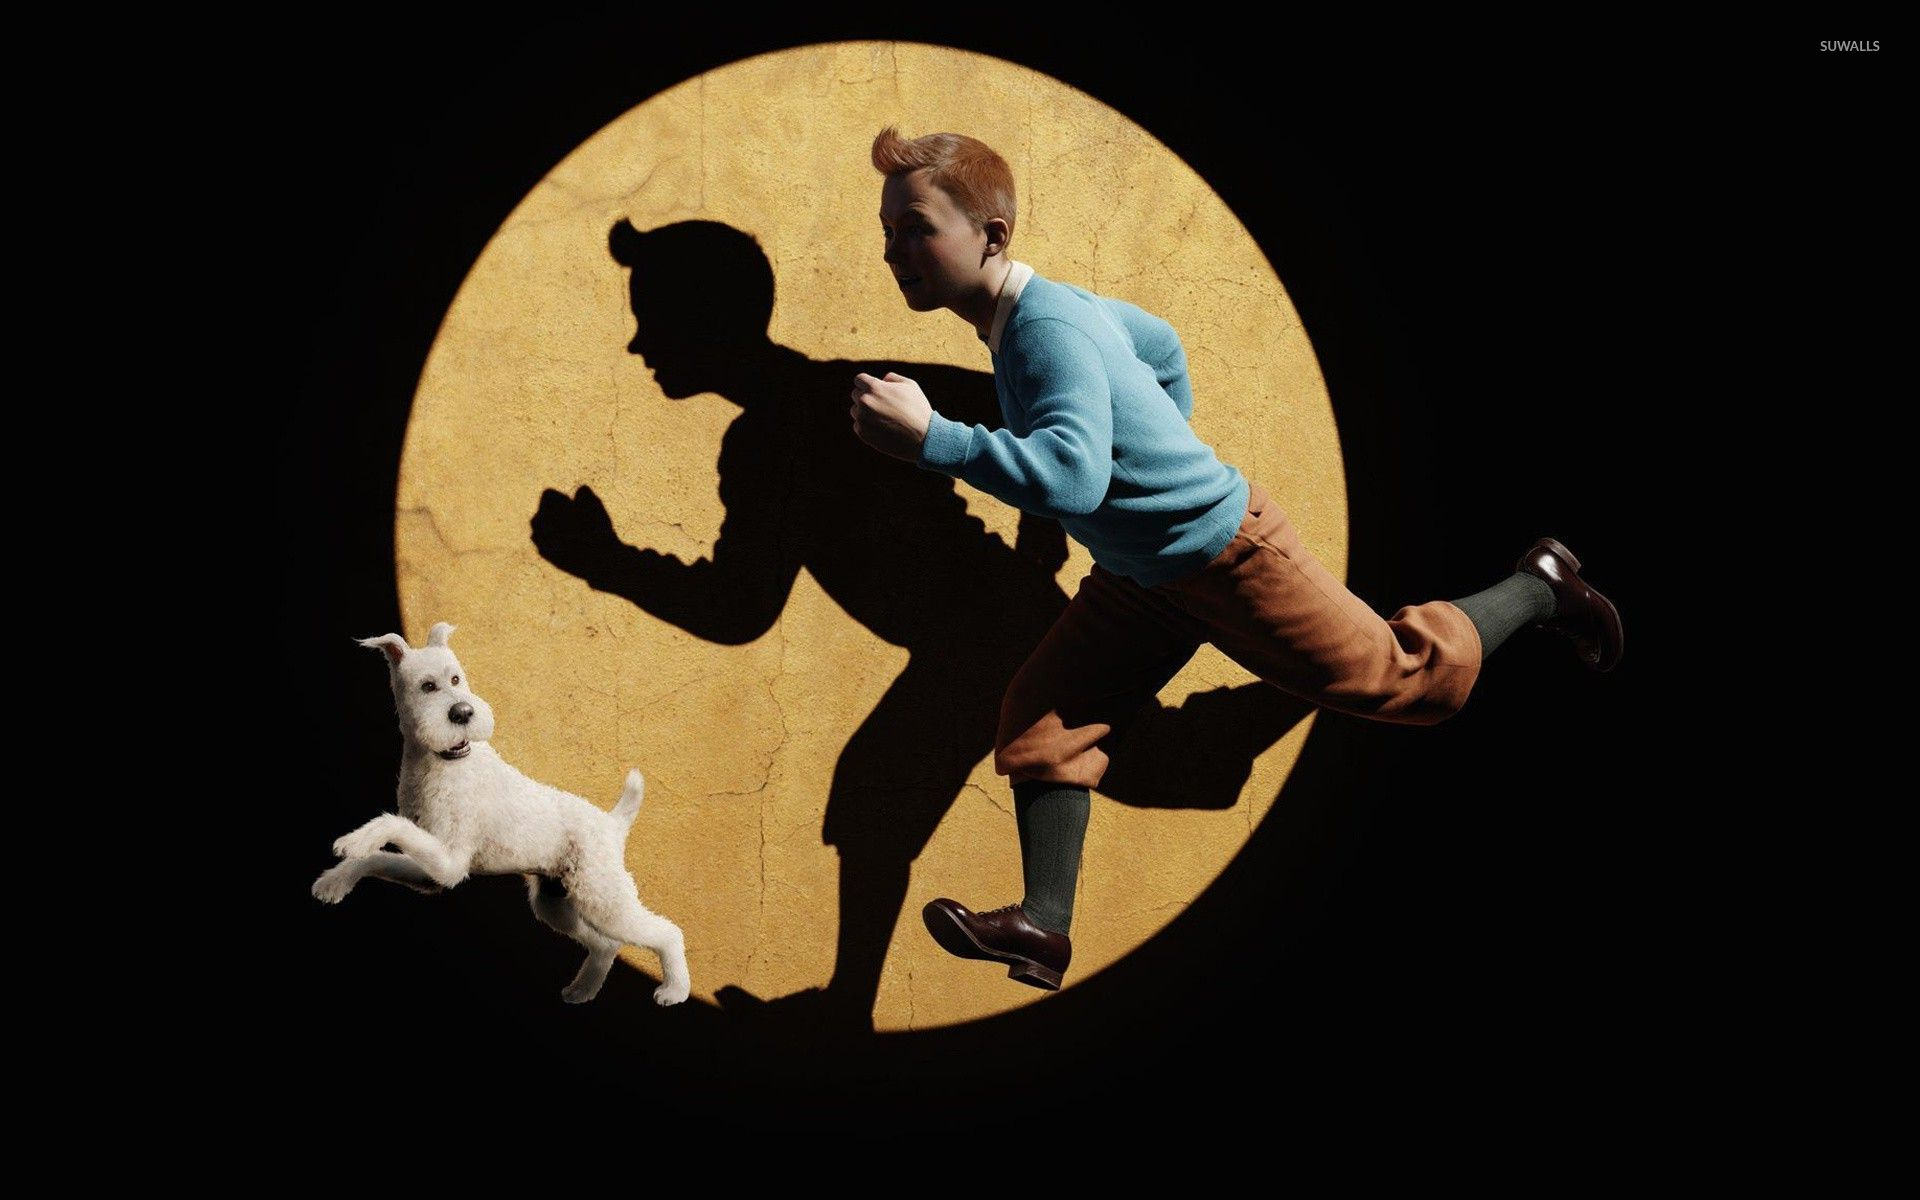 the adventures of tintin - the secret of the unicorn [3] wallpaper